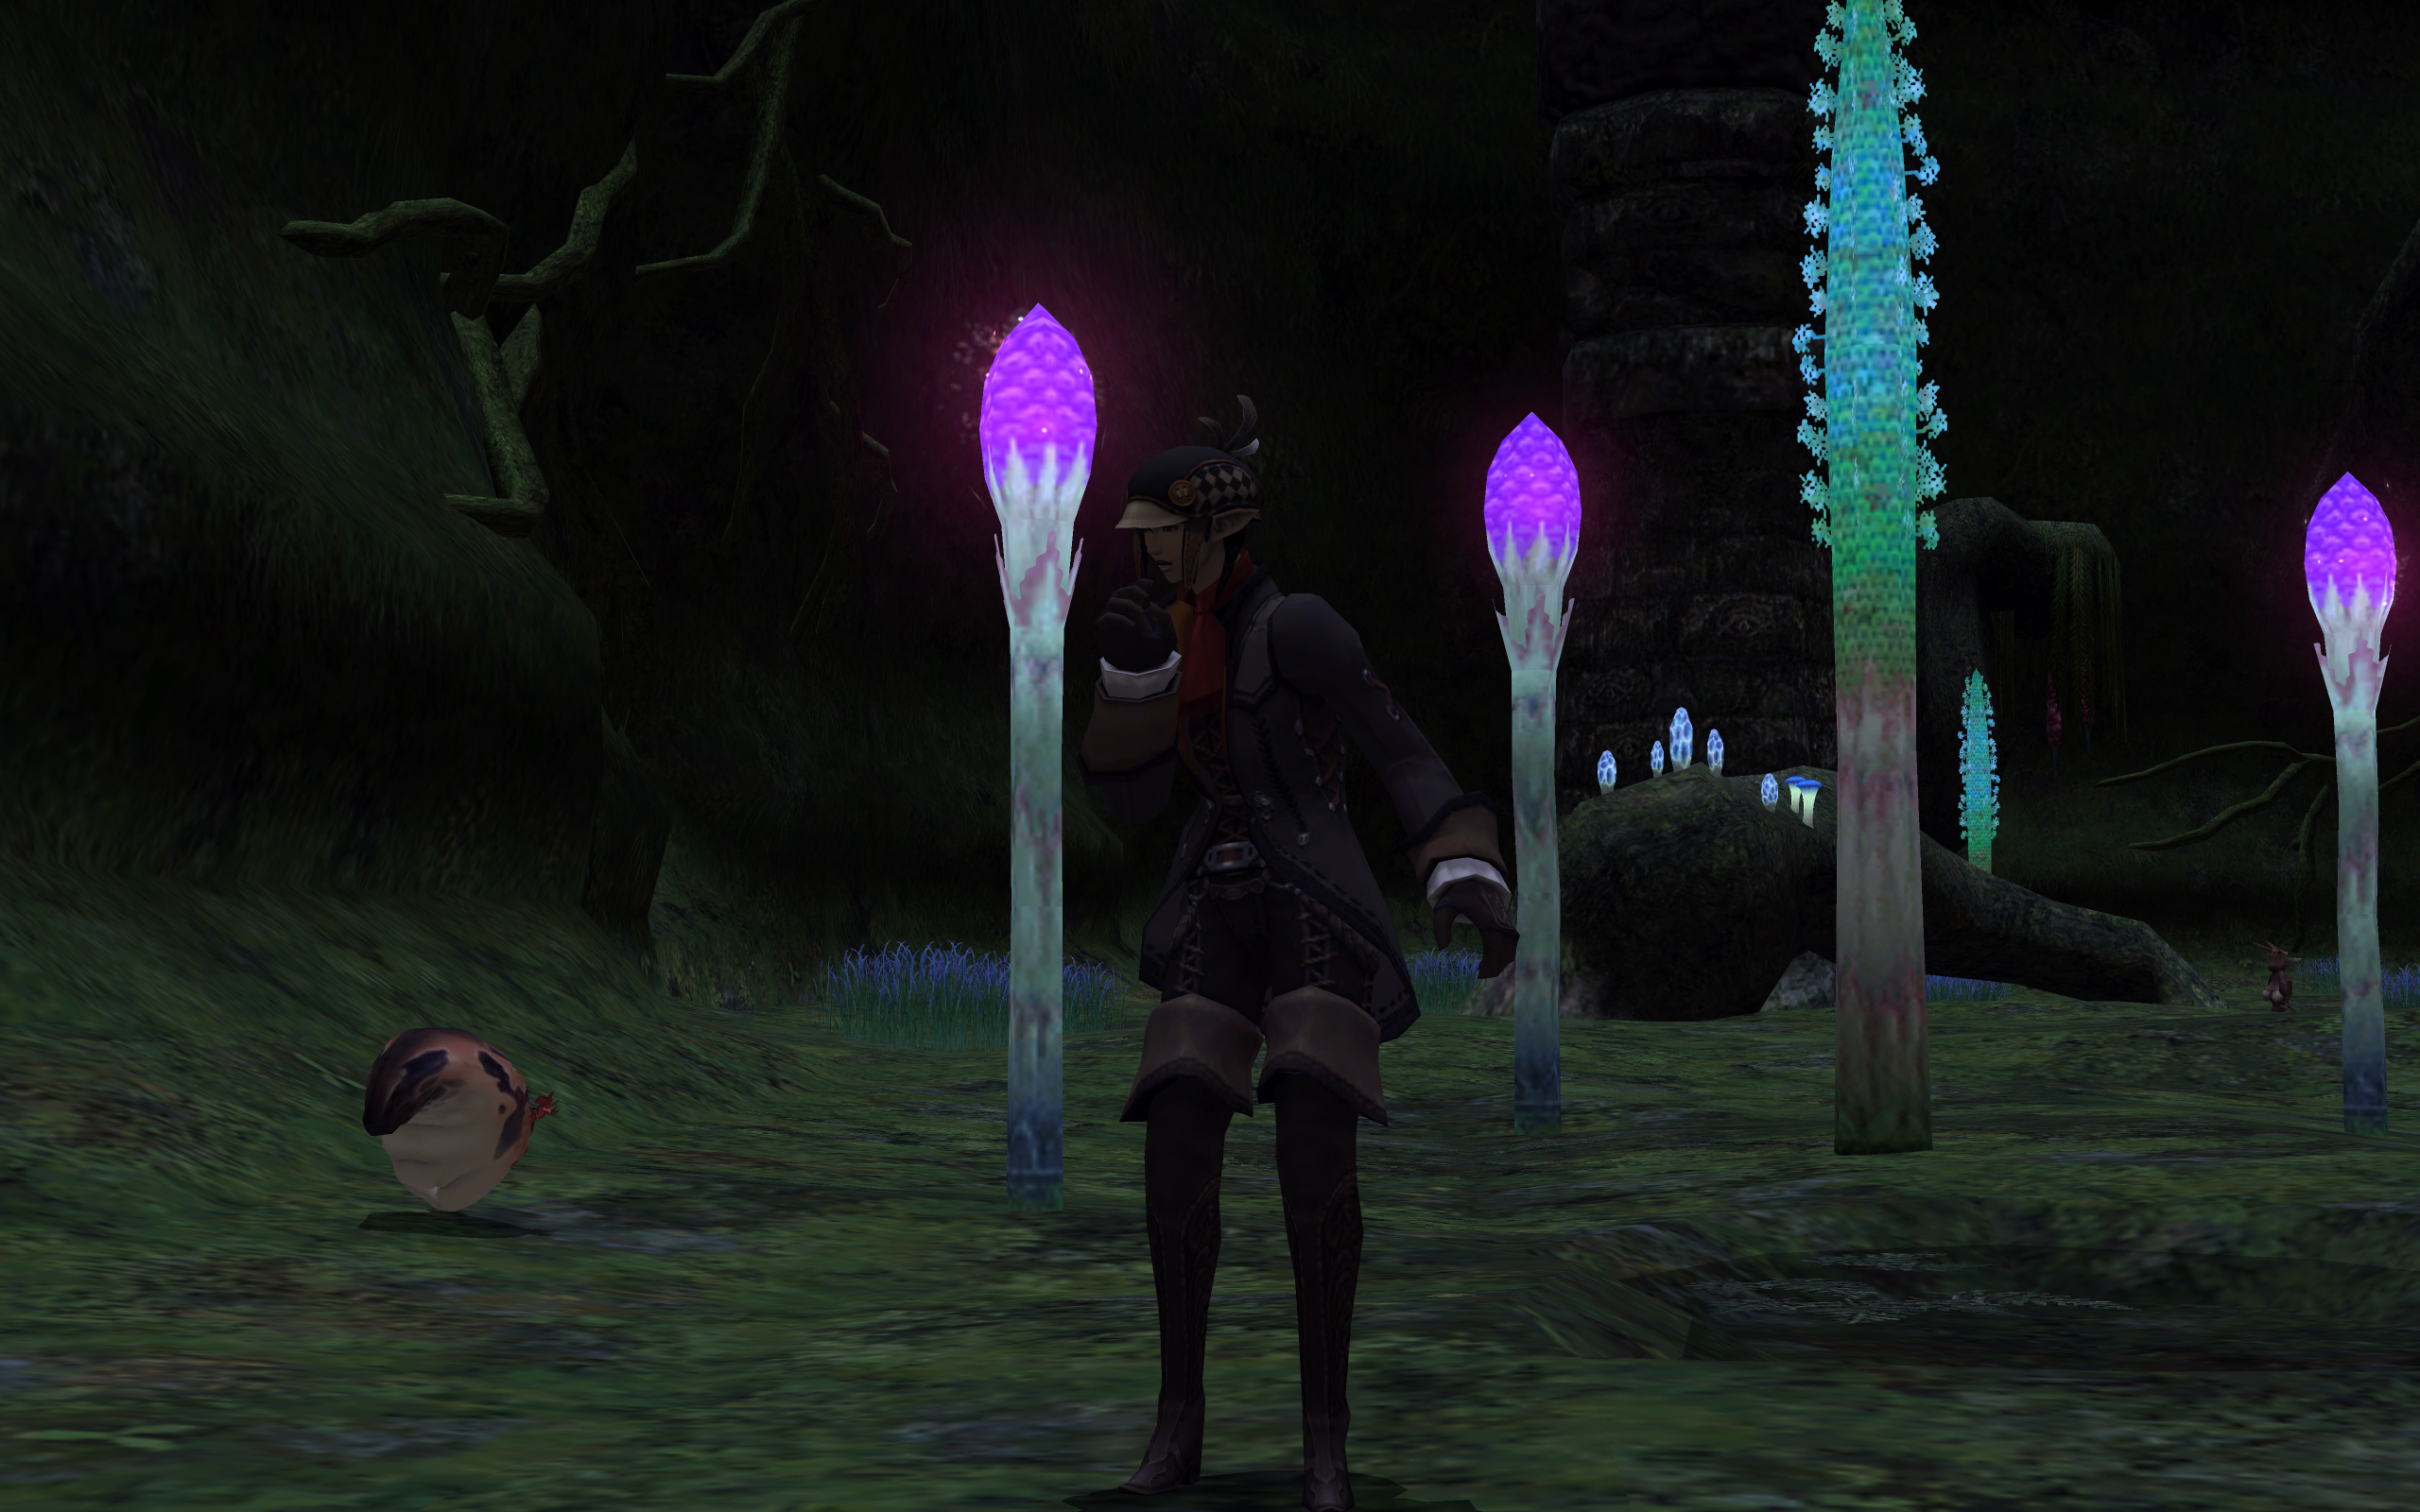 ffxi first tanked fight empires jorm with kurayami died beat that gadr where down definitely keep minority sprit nostalgia always favoritebest lookingfunniest screenshots incoming nidhogg time your khim looong think this